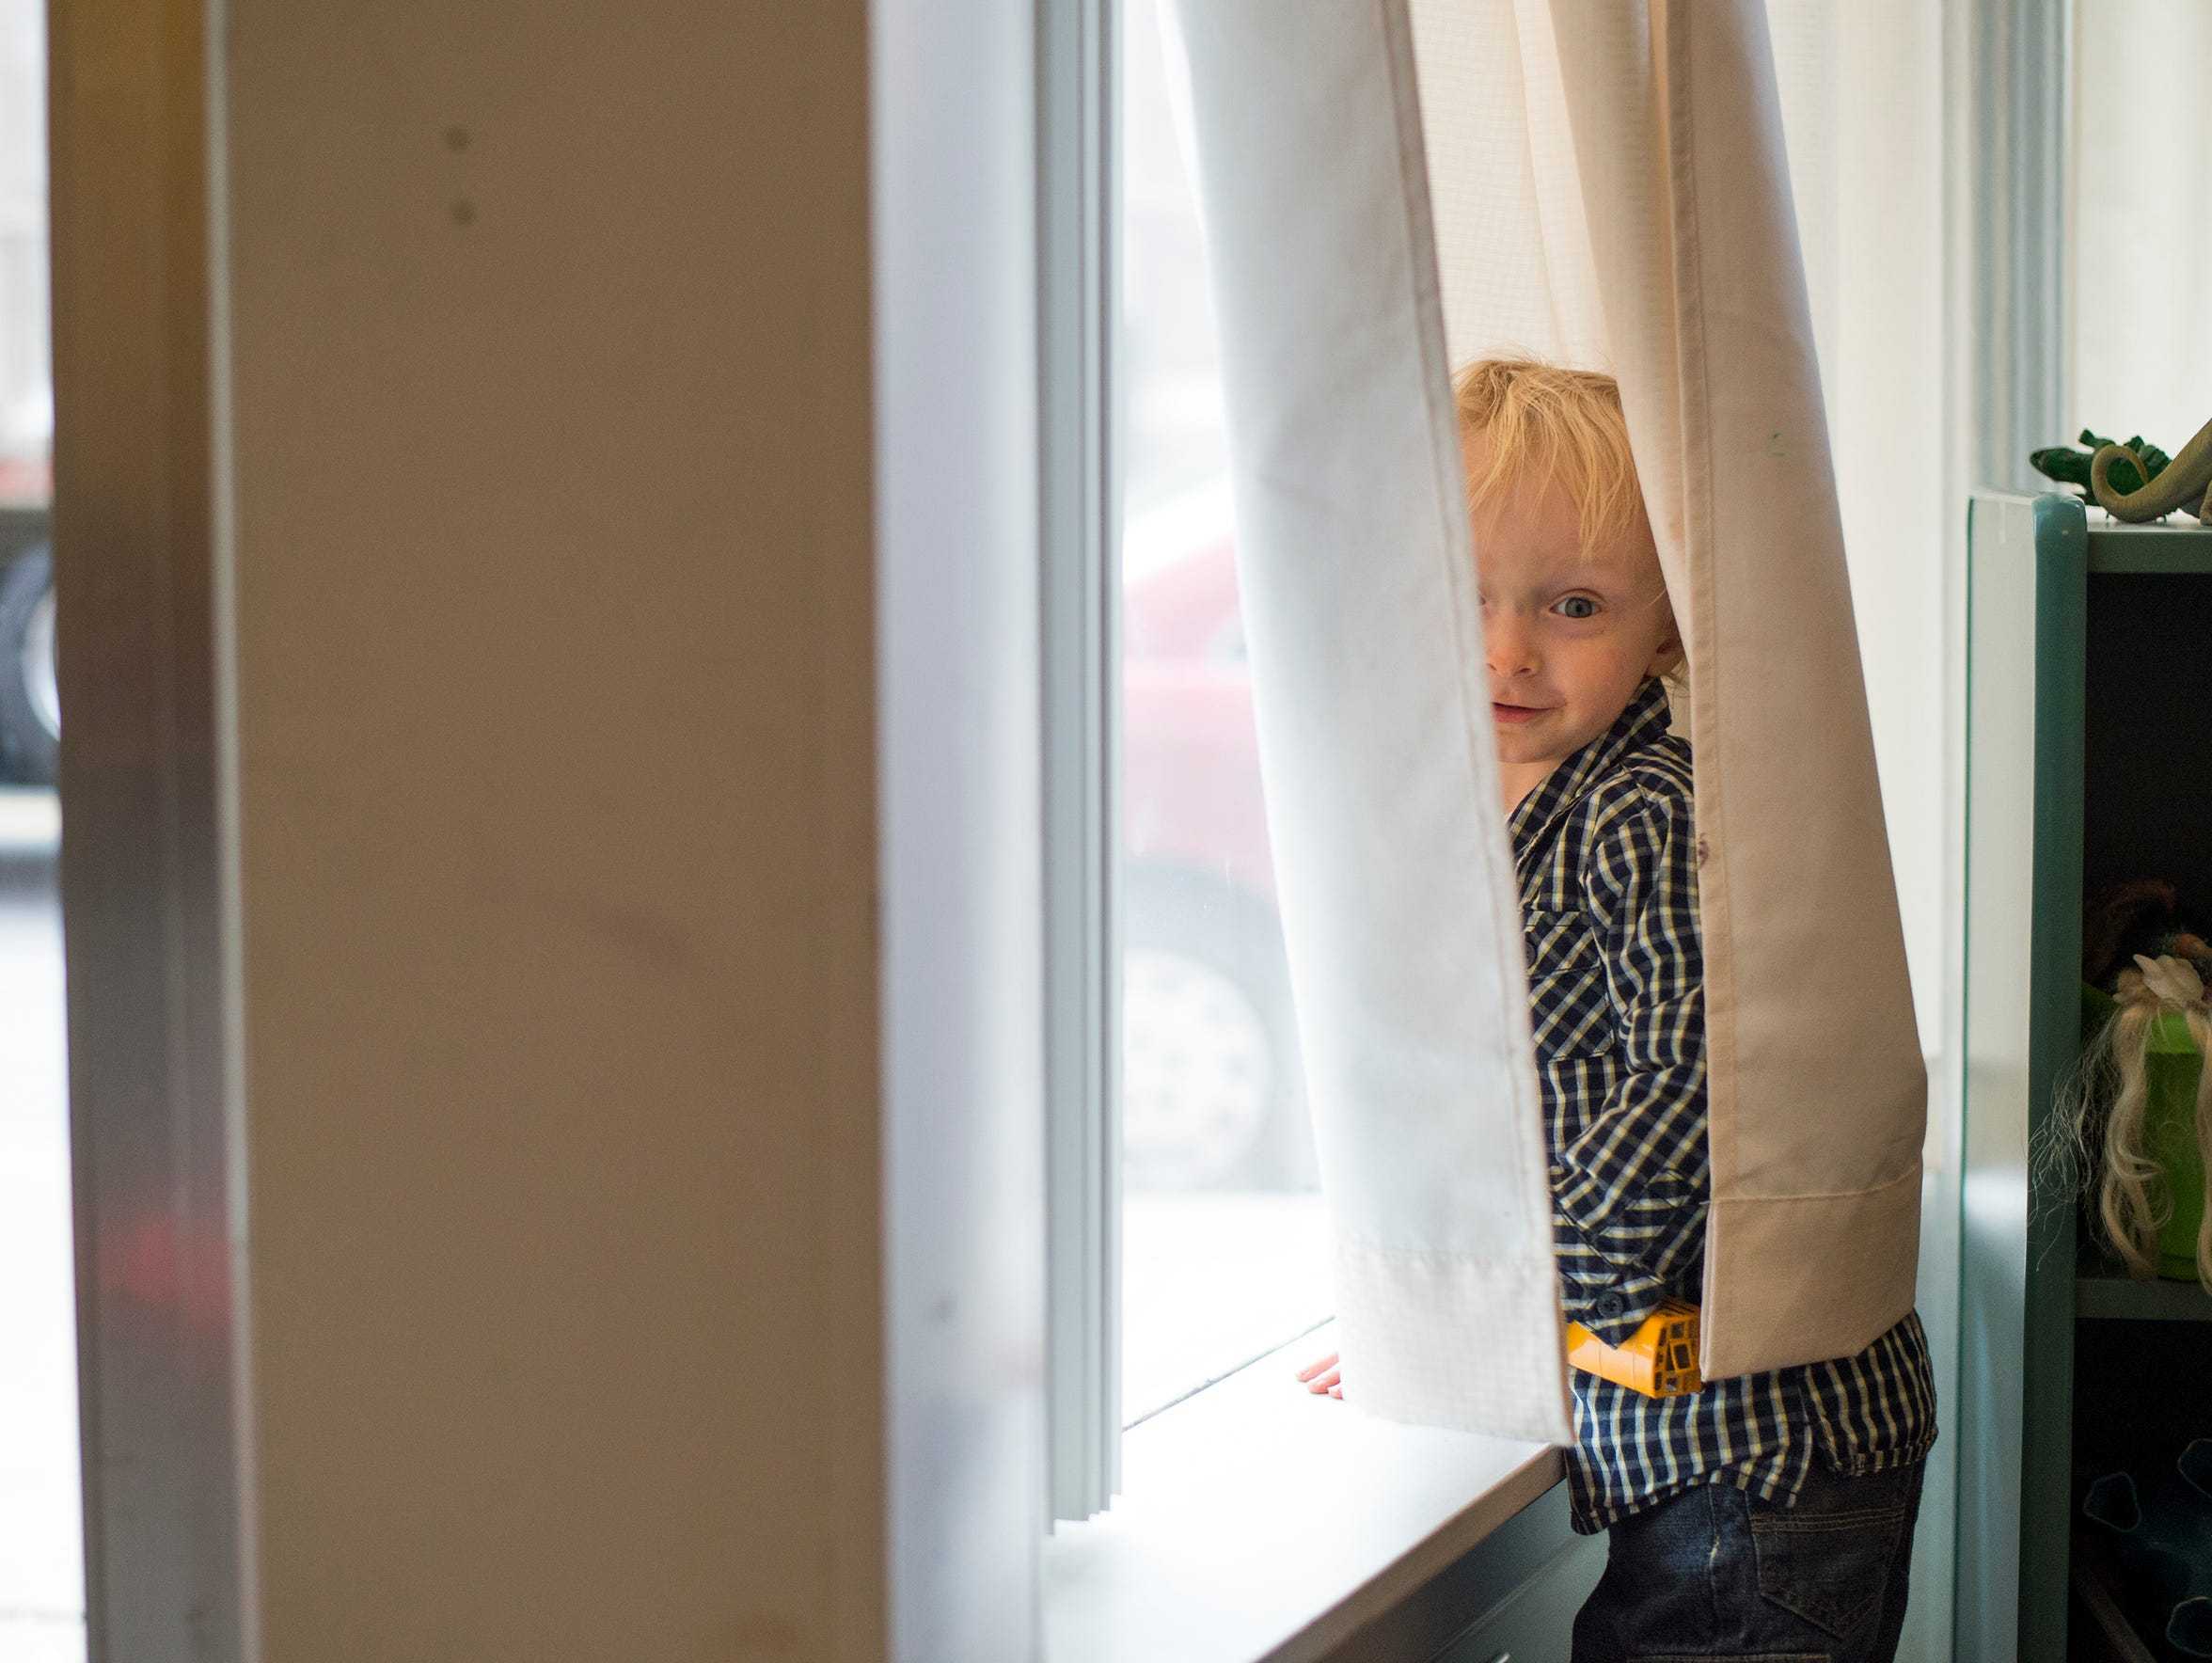 Two-year-old Eli peeks out from behind the curtains